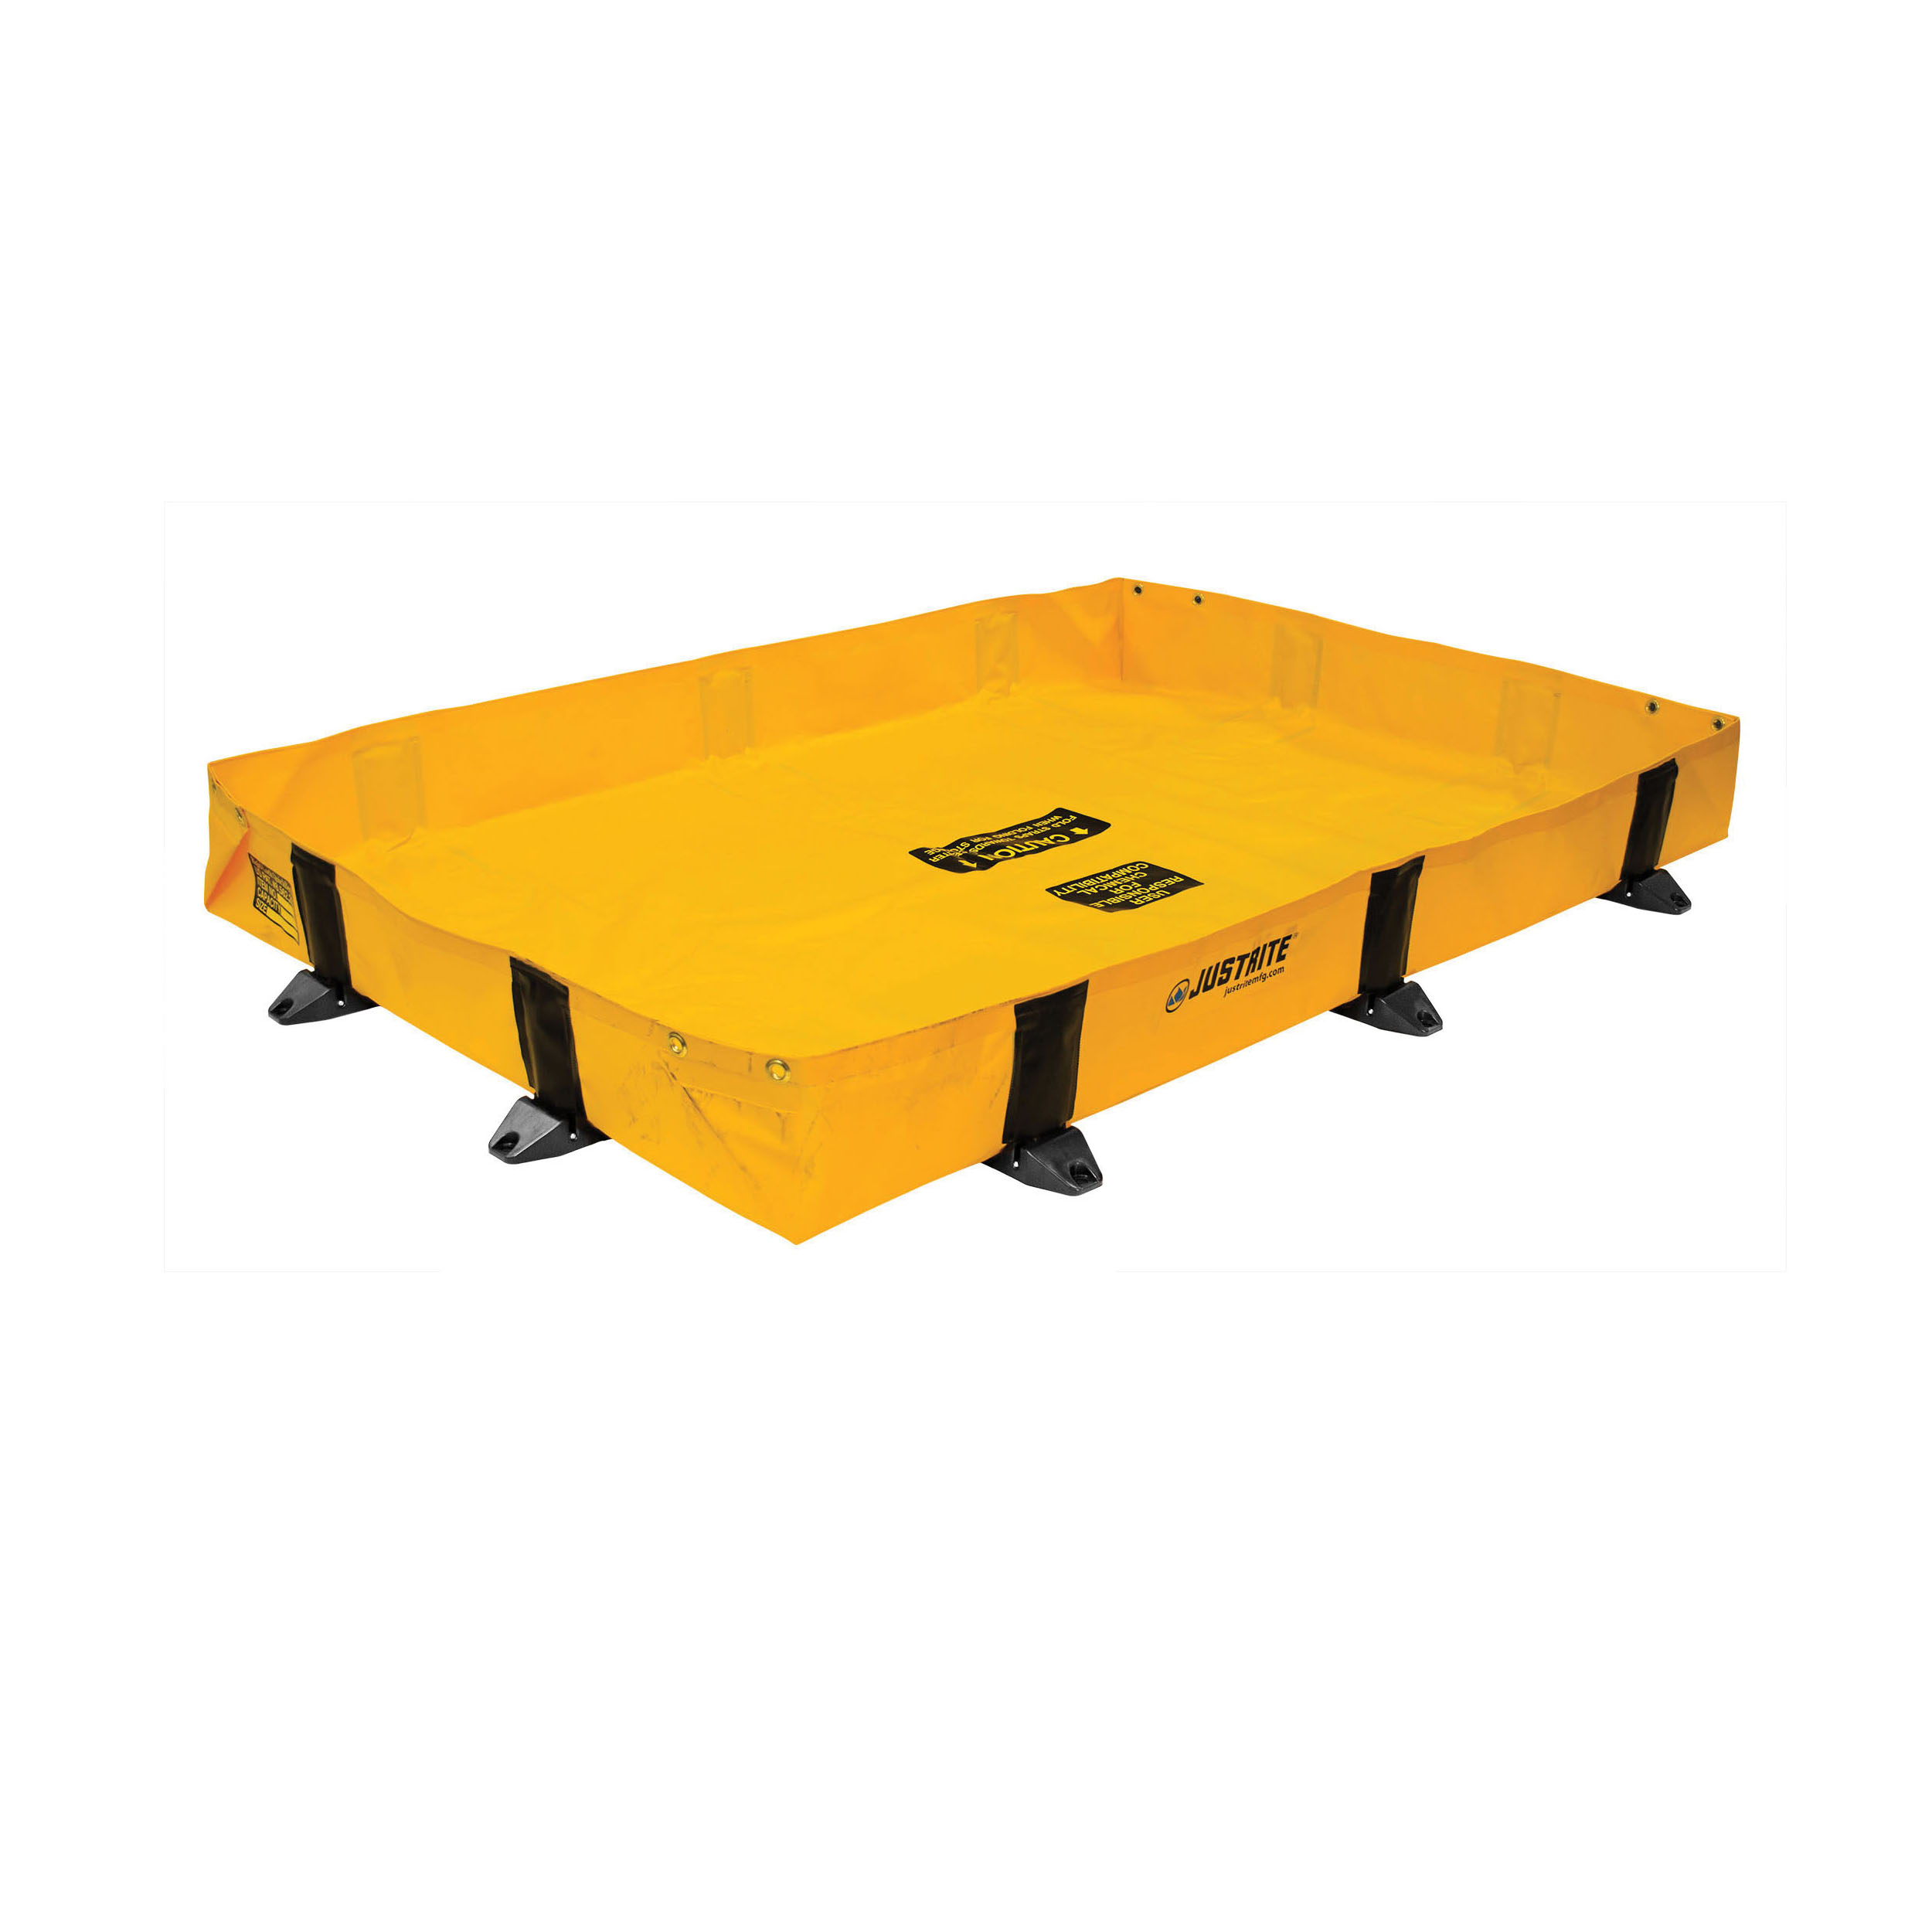 Justrite® 28374 Rigid-Lock QuickBerm® Lite Spill Containment Berm, 8 ft L x 4 ft W x 8 in H, EnGuard™ I/PVC Coated Fabric